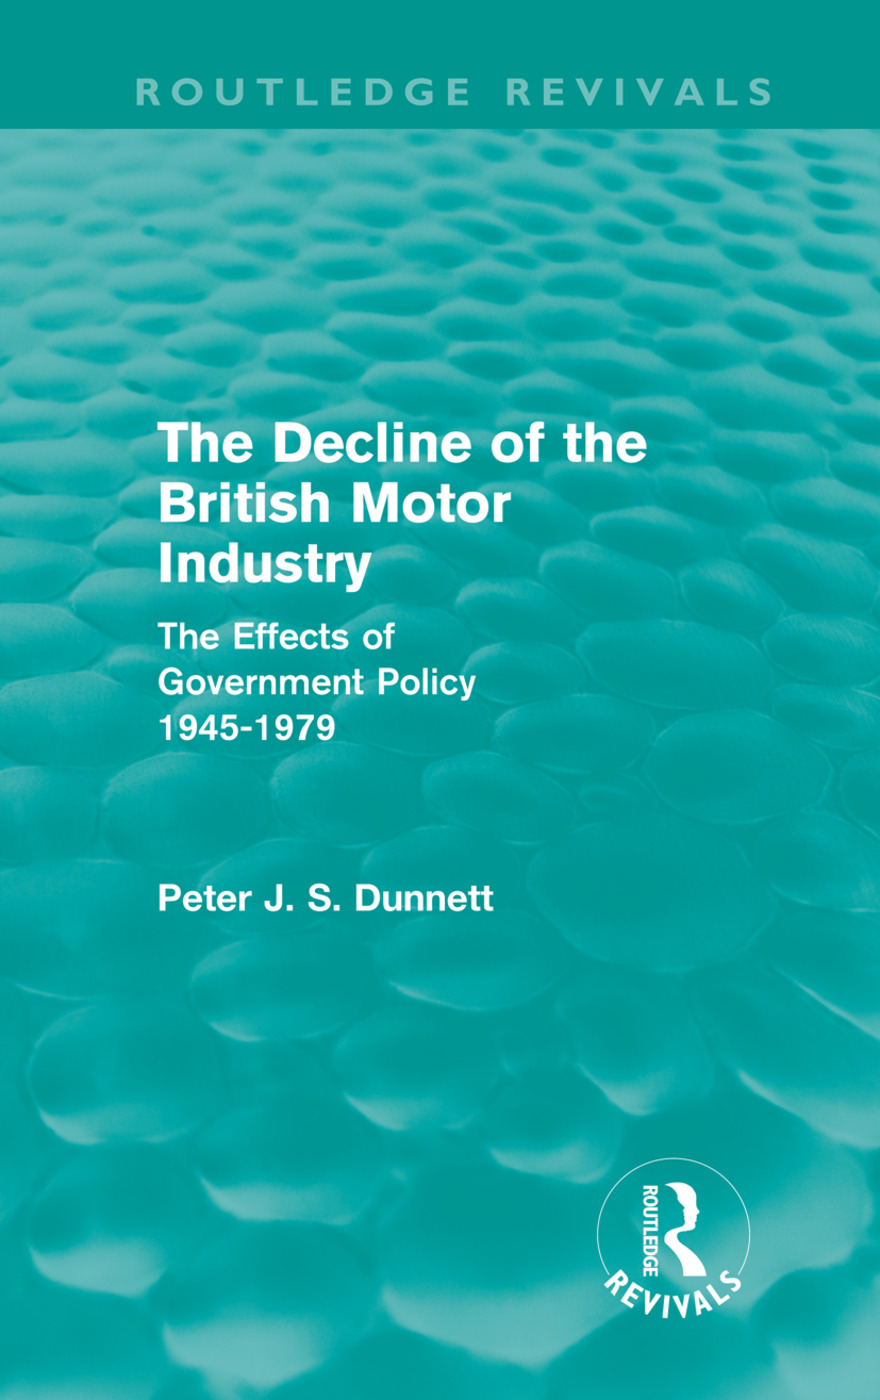 The Decline of the British Motor Industry (Routledge Revivals): The Effects of Government Policy, 1945-79 (Hardback) book cover